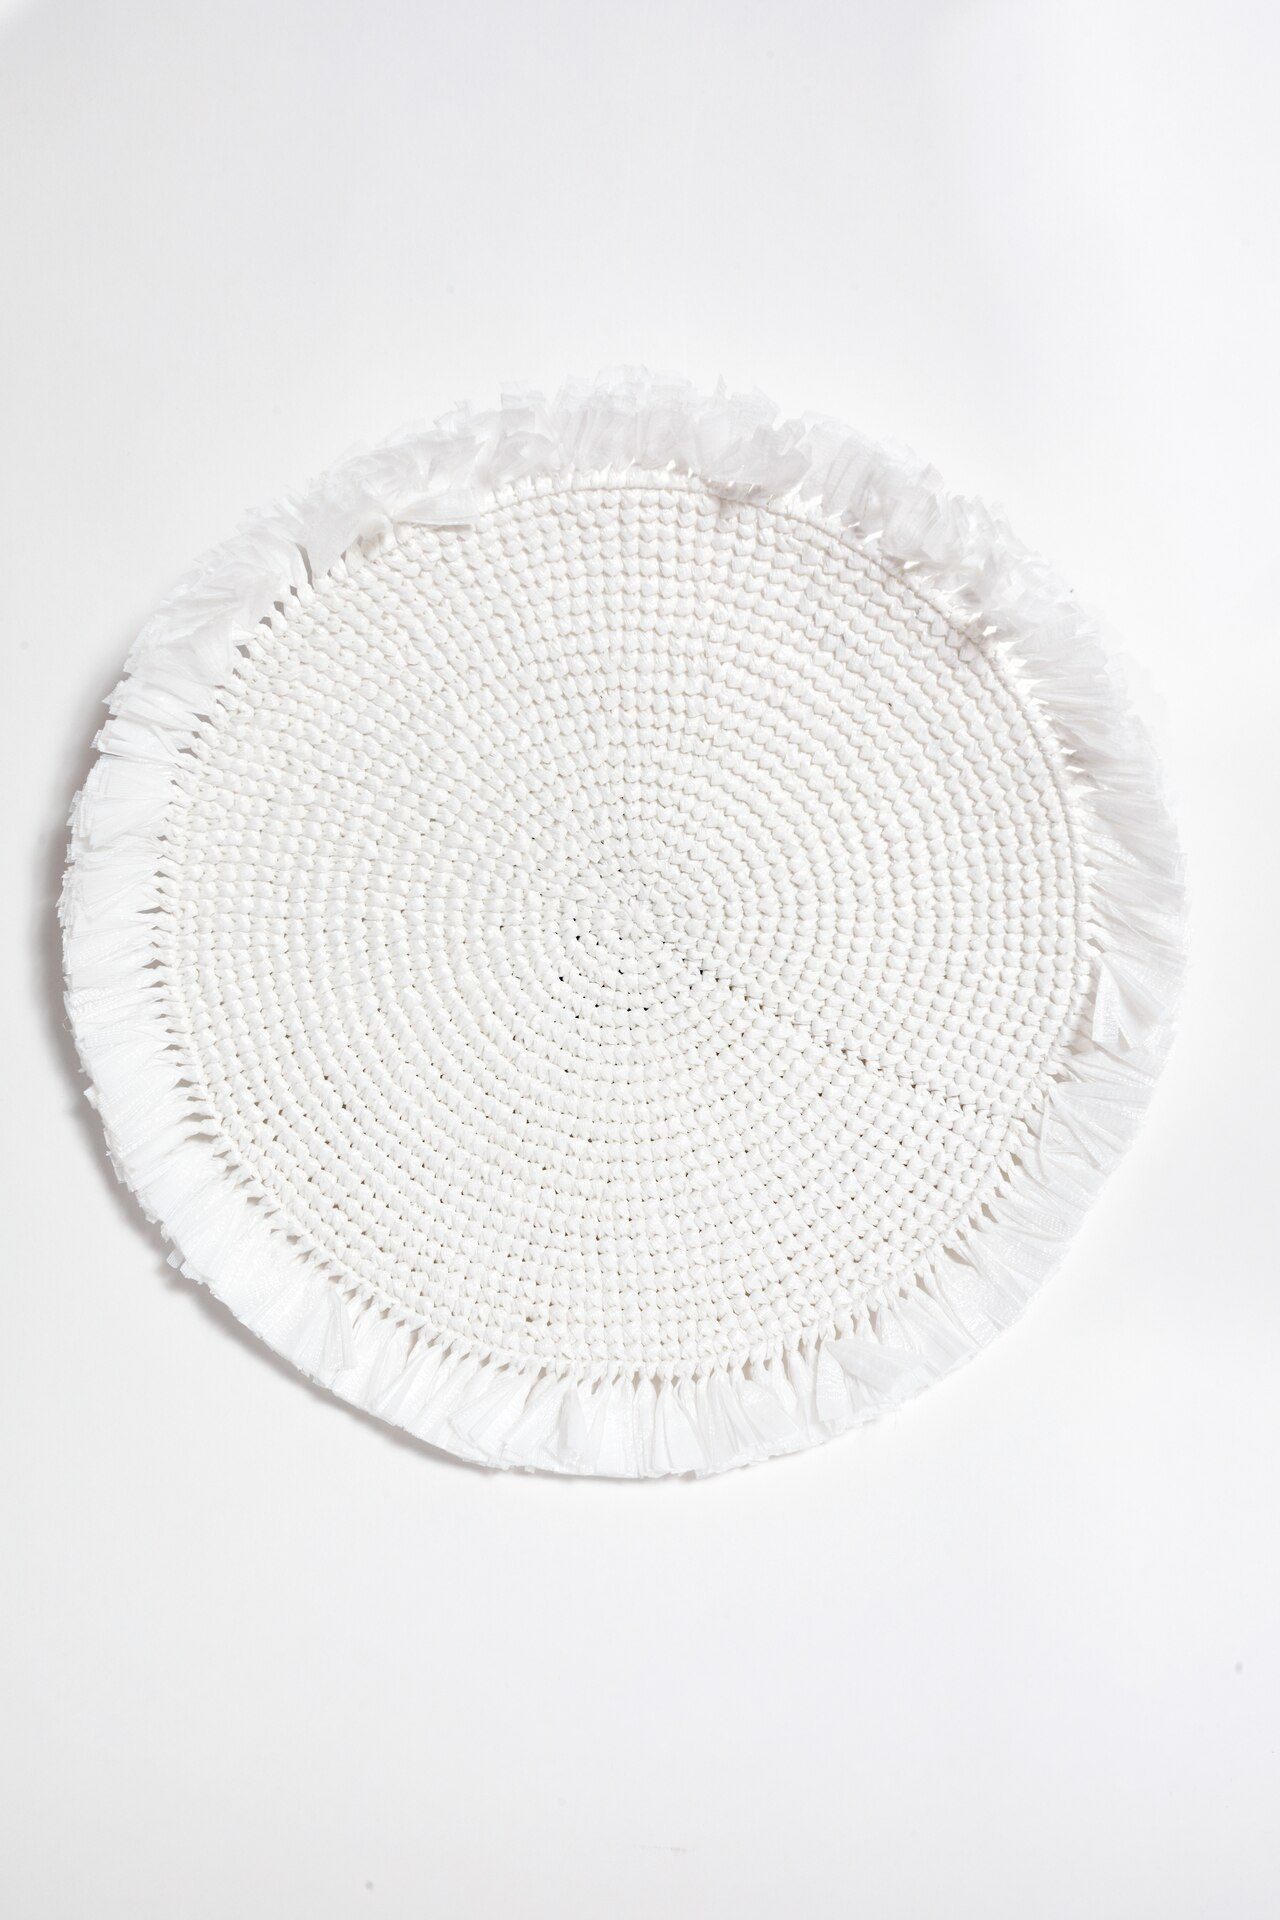 White Woven Fringe Placemat Placemats Floral Napkin Rings Woven